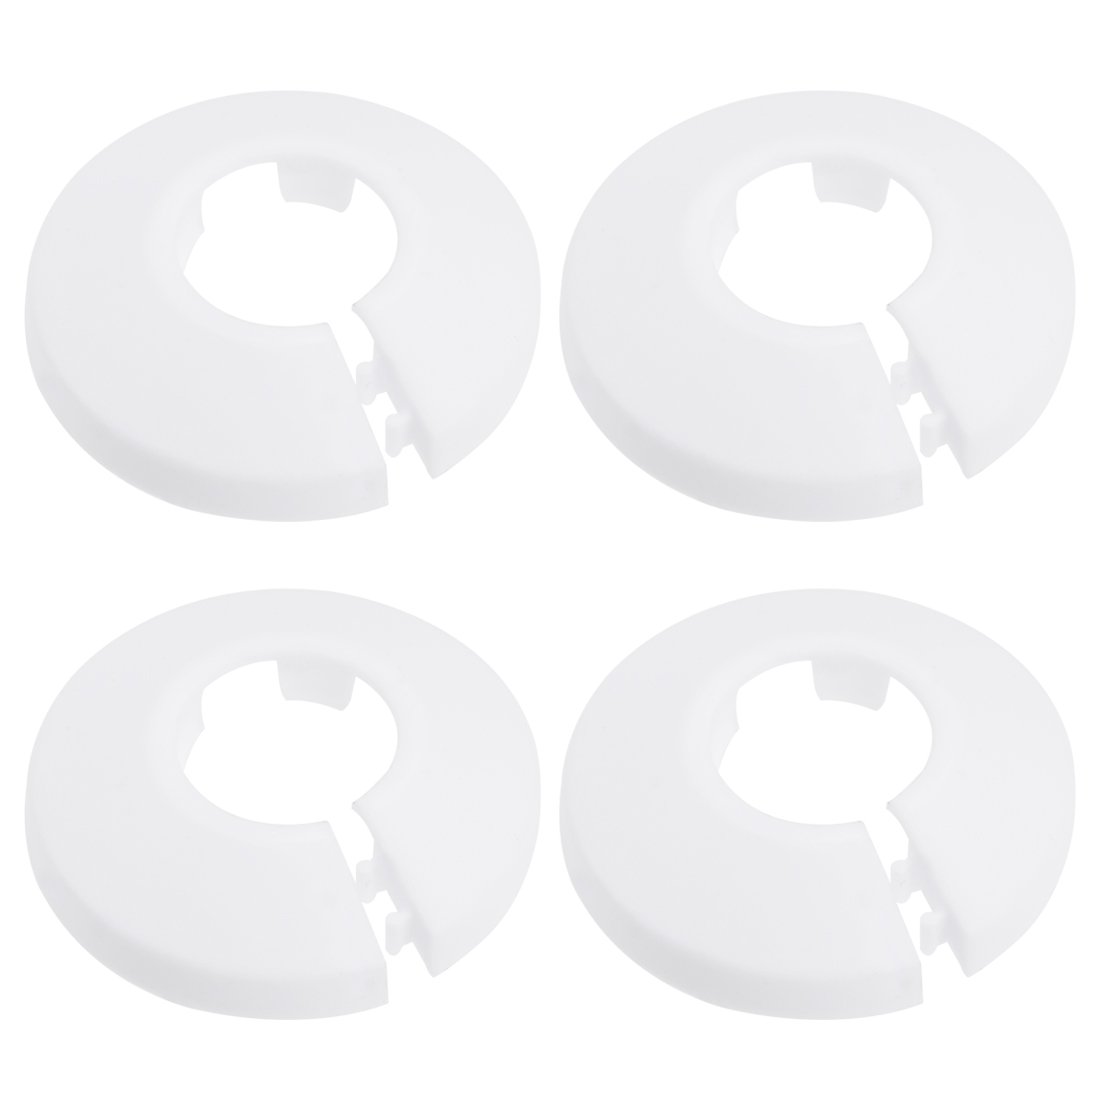 Uxcell 4 Pcs Pipe Collar 21mm PP Radiator Escutcheon Water Pipe Cover Decoration White